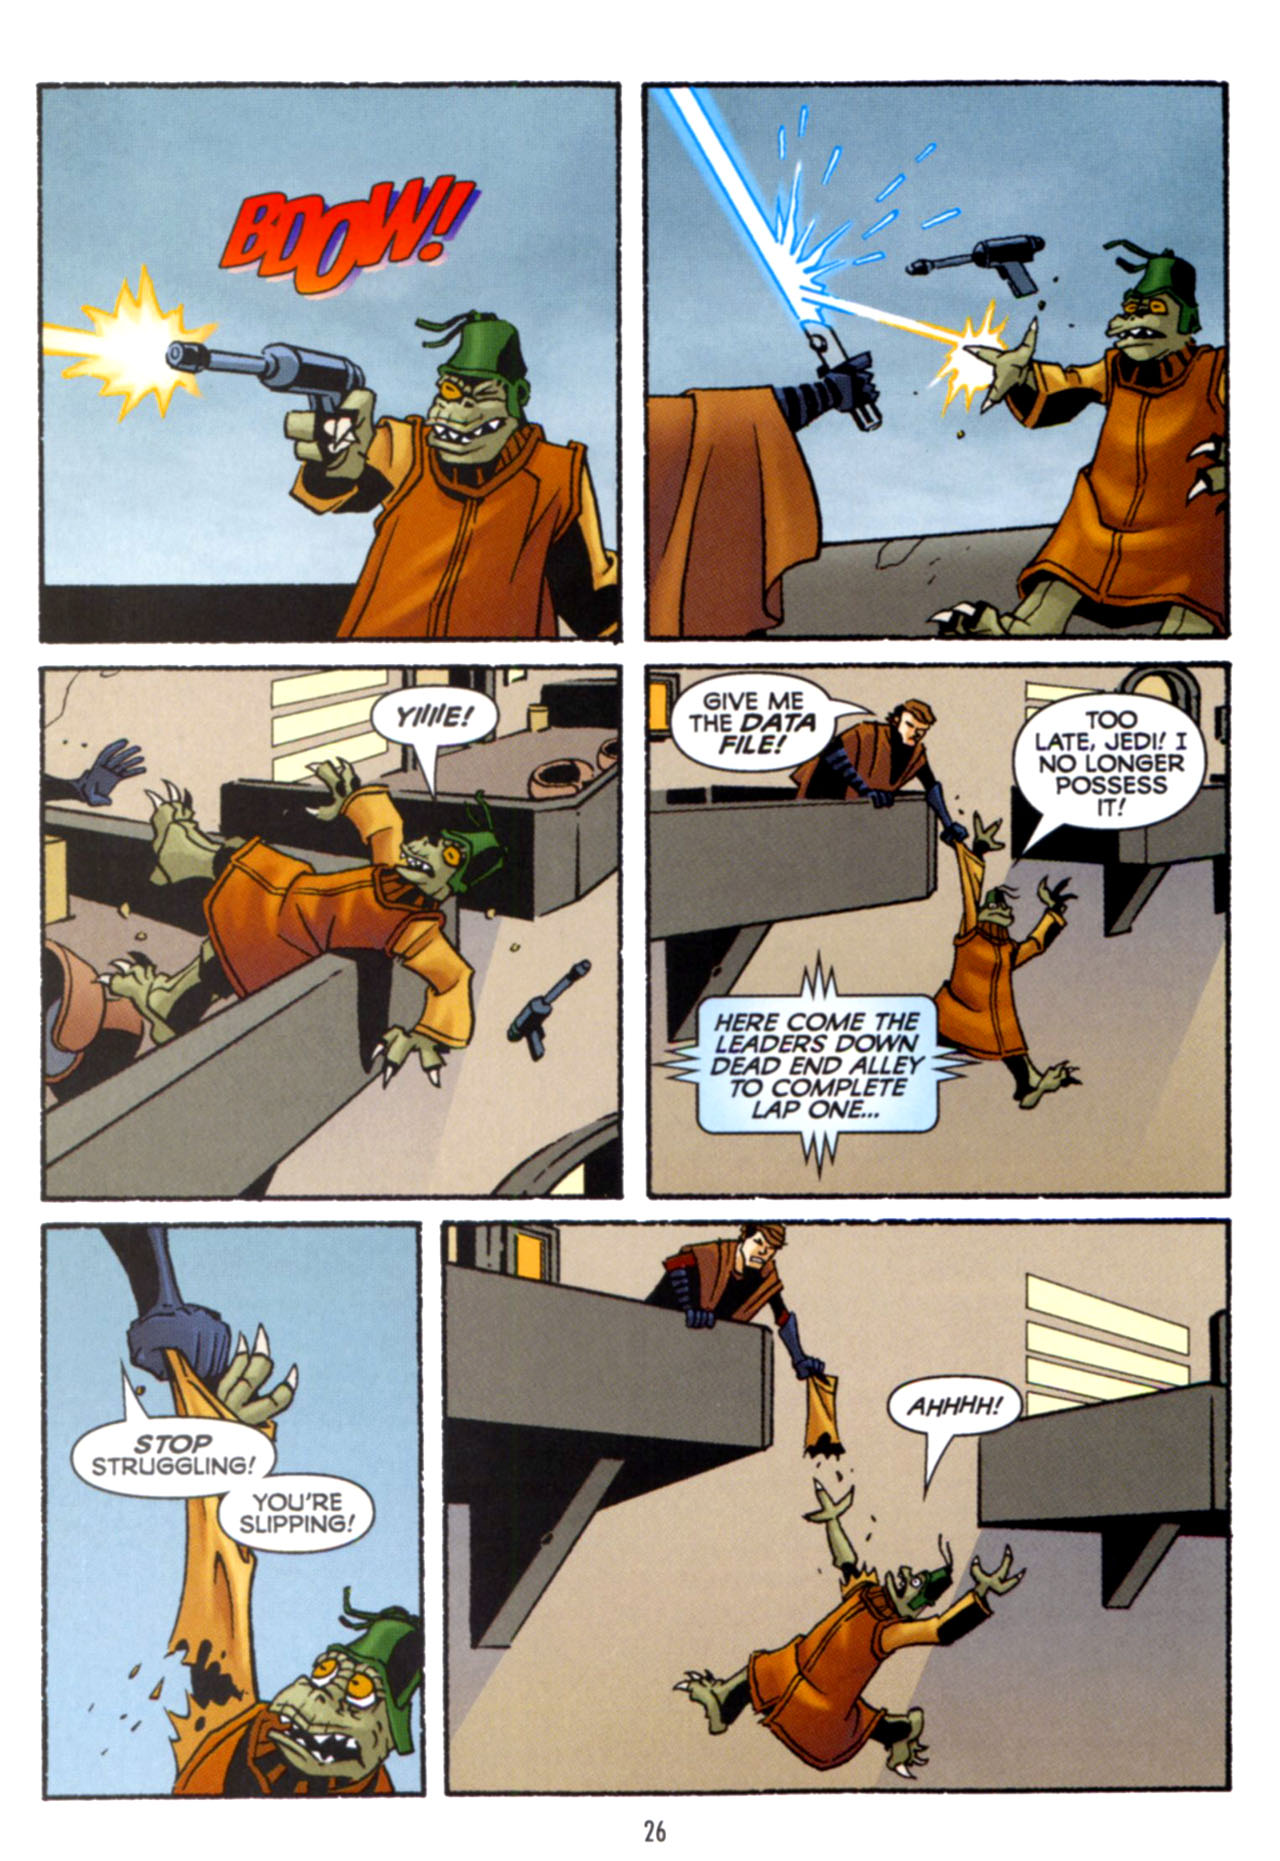 Read online Star Wars: The Clone Wars - Crash Course comic -  Issue # Full - 27